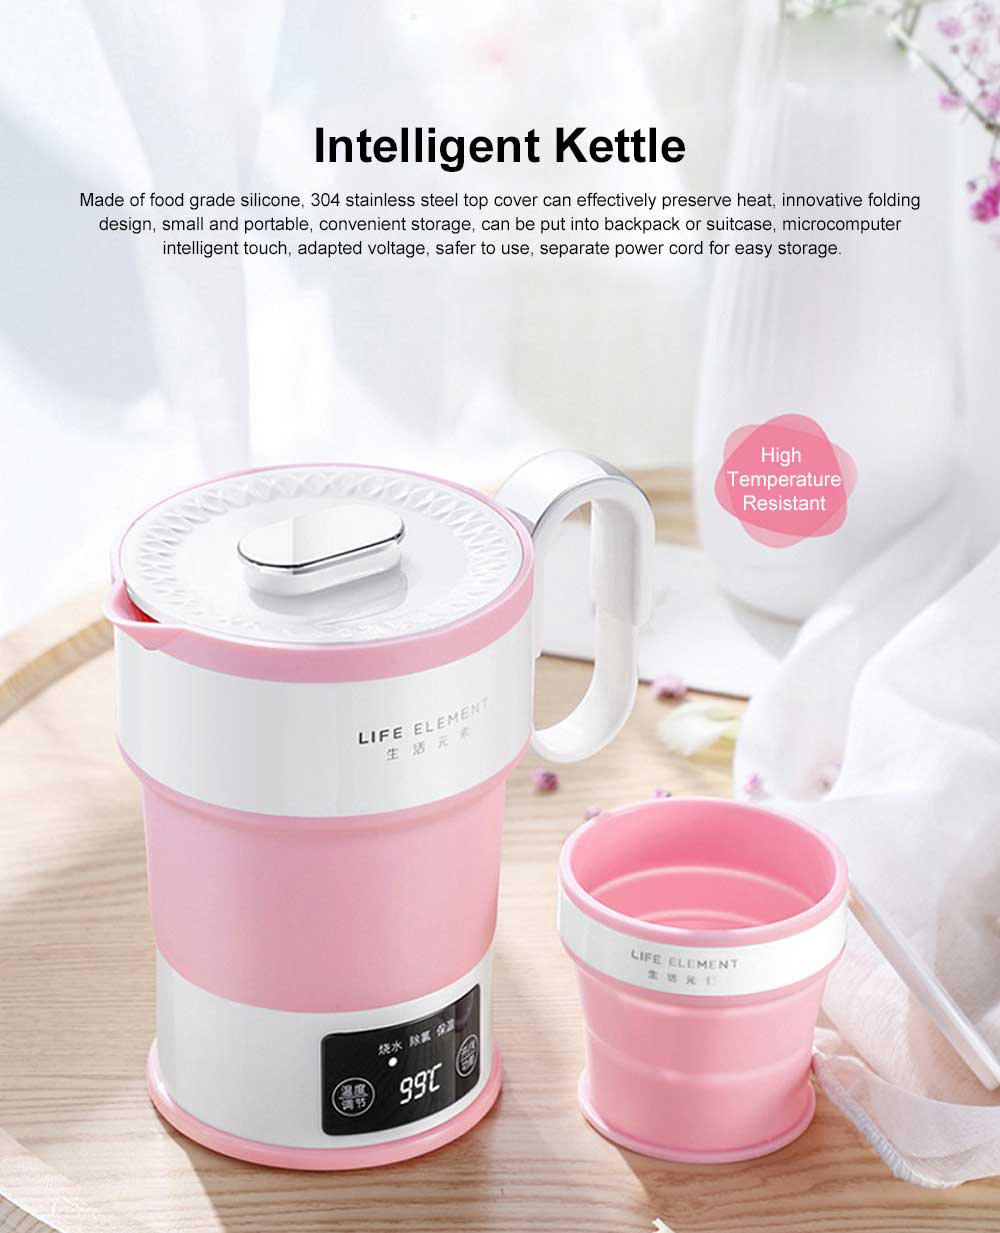 Portable Electric Heating Cup, Food Grade Silicone Pink Compression Folding Kettle for Travel, Life Element Intelligent Water Bottle 0